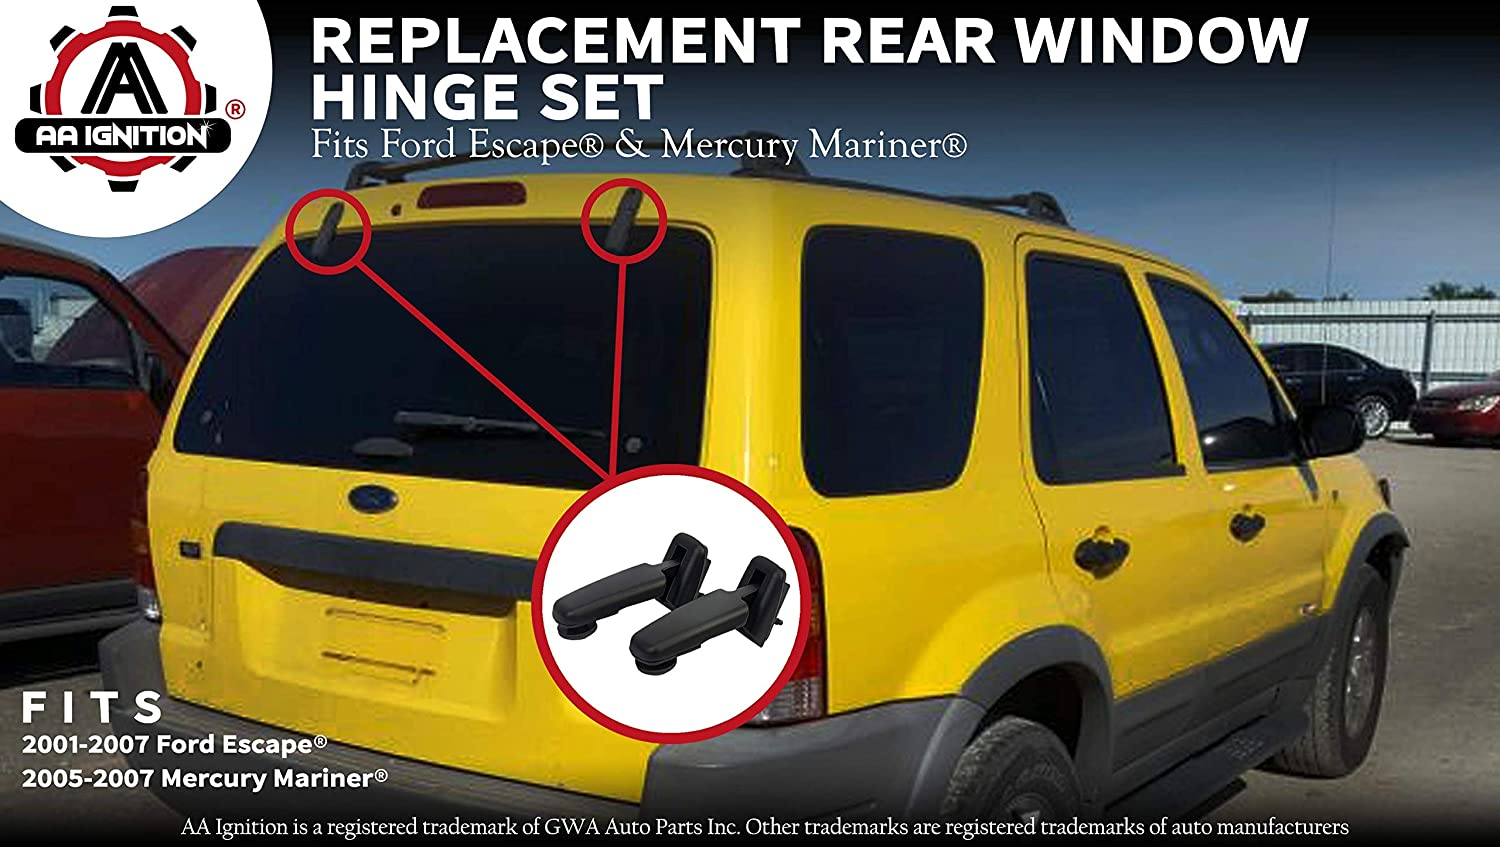 Rear Window Hinge Liftgate Glass Hinge Set Right /& Left Pair for 2001-2007 Ford Escape 2005-2007 Mercury Mariner Replace # YL8Z-78420A68-BA YL8Z-78420A69-BA